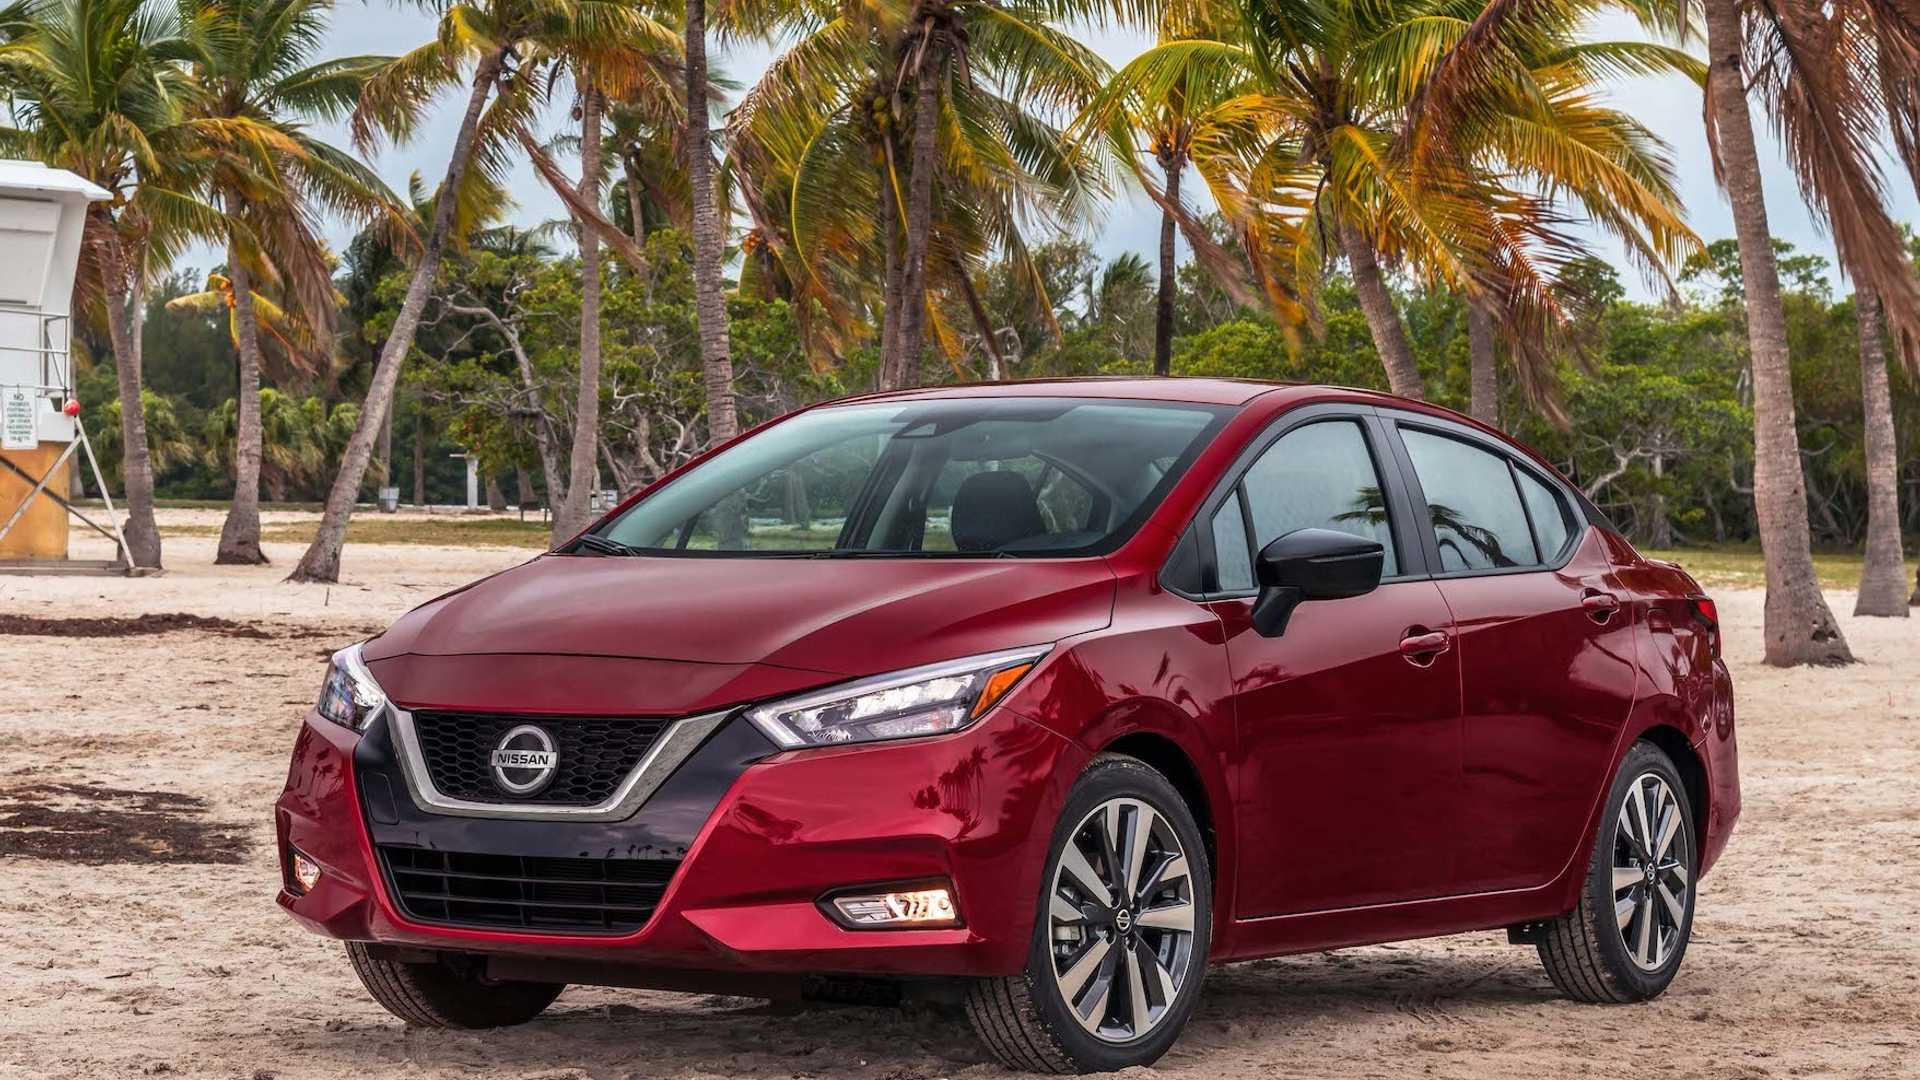 Car manufacturer Nissan has taken the wraps off its next-gen Versa sedan/saloon meant for the U.S. market